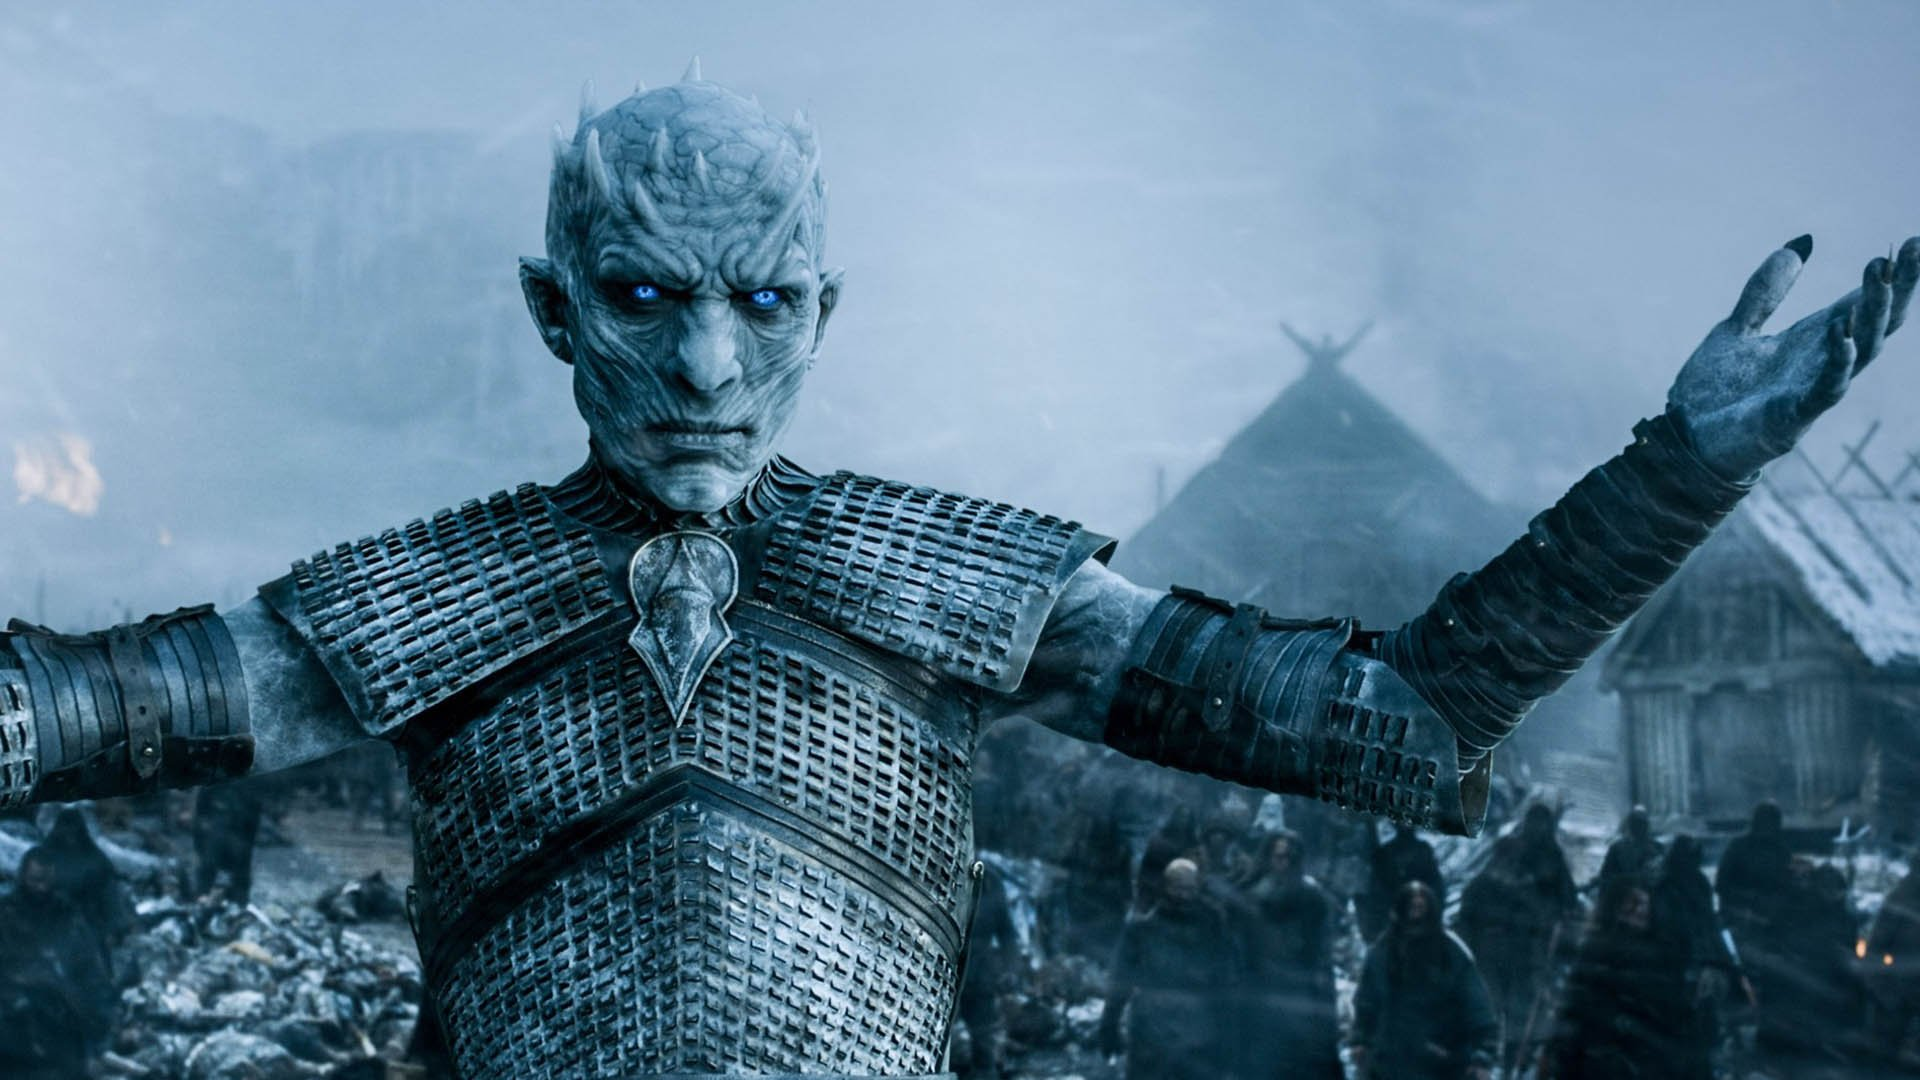 شخصیت پادشاه شب (night king) در سریال game of thrones